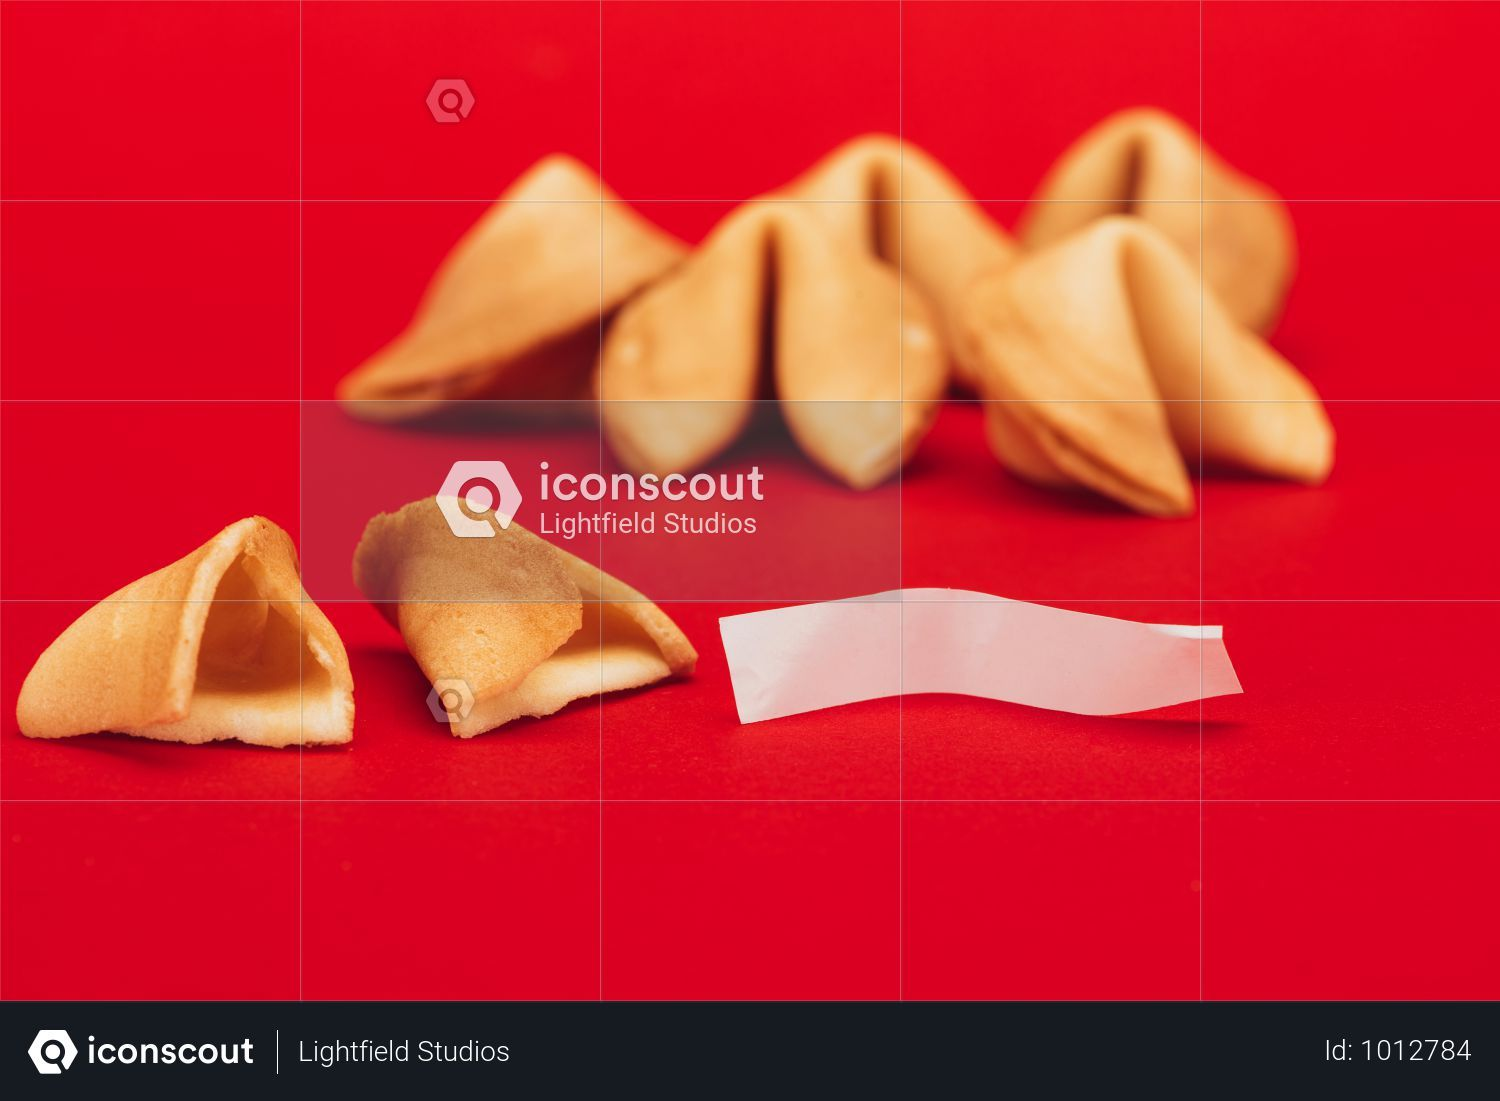 Premium Traditional Chinese Fortune Cookies On Red Surface Chinese New Year Concept Photo Download In Png Jpg Format Fortune Cookie Chinese Fortune Cookie Traditional Chinese